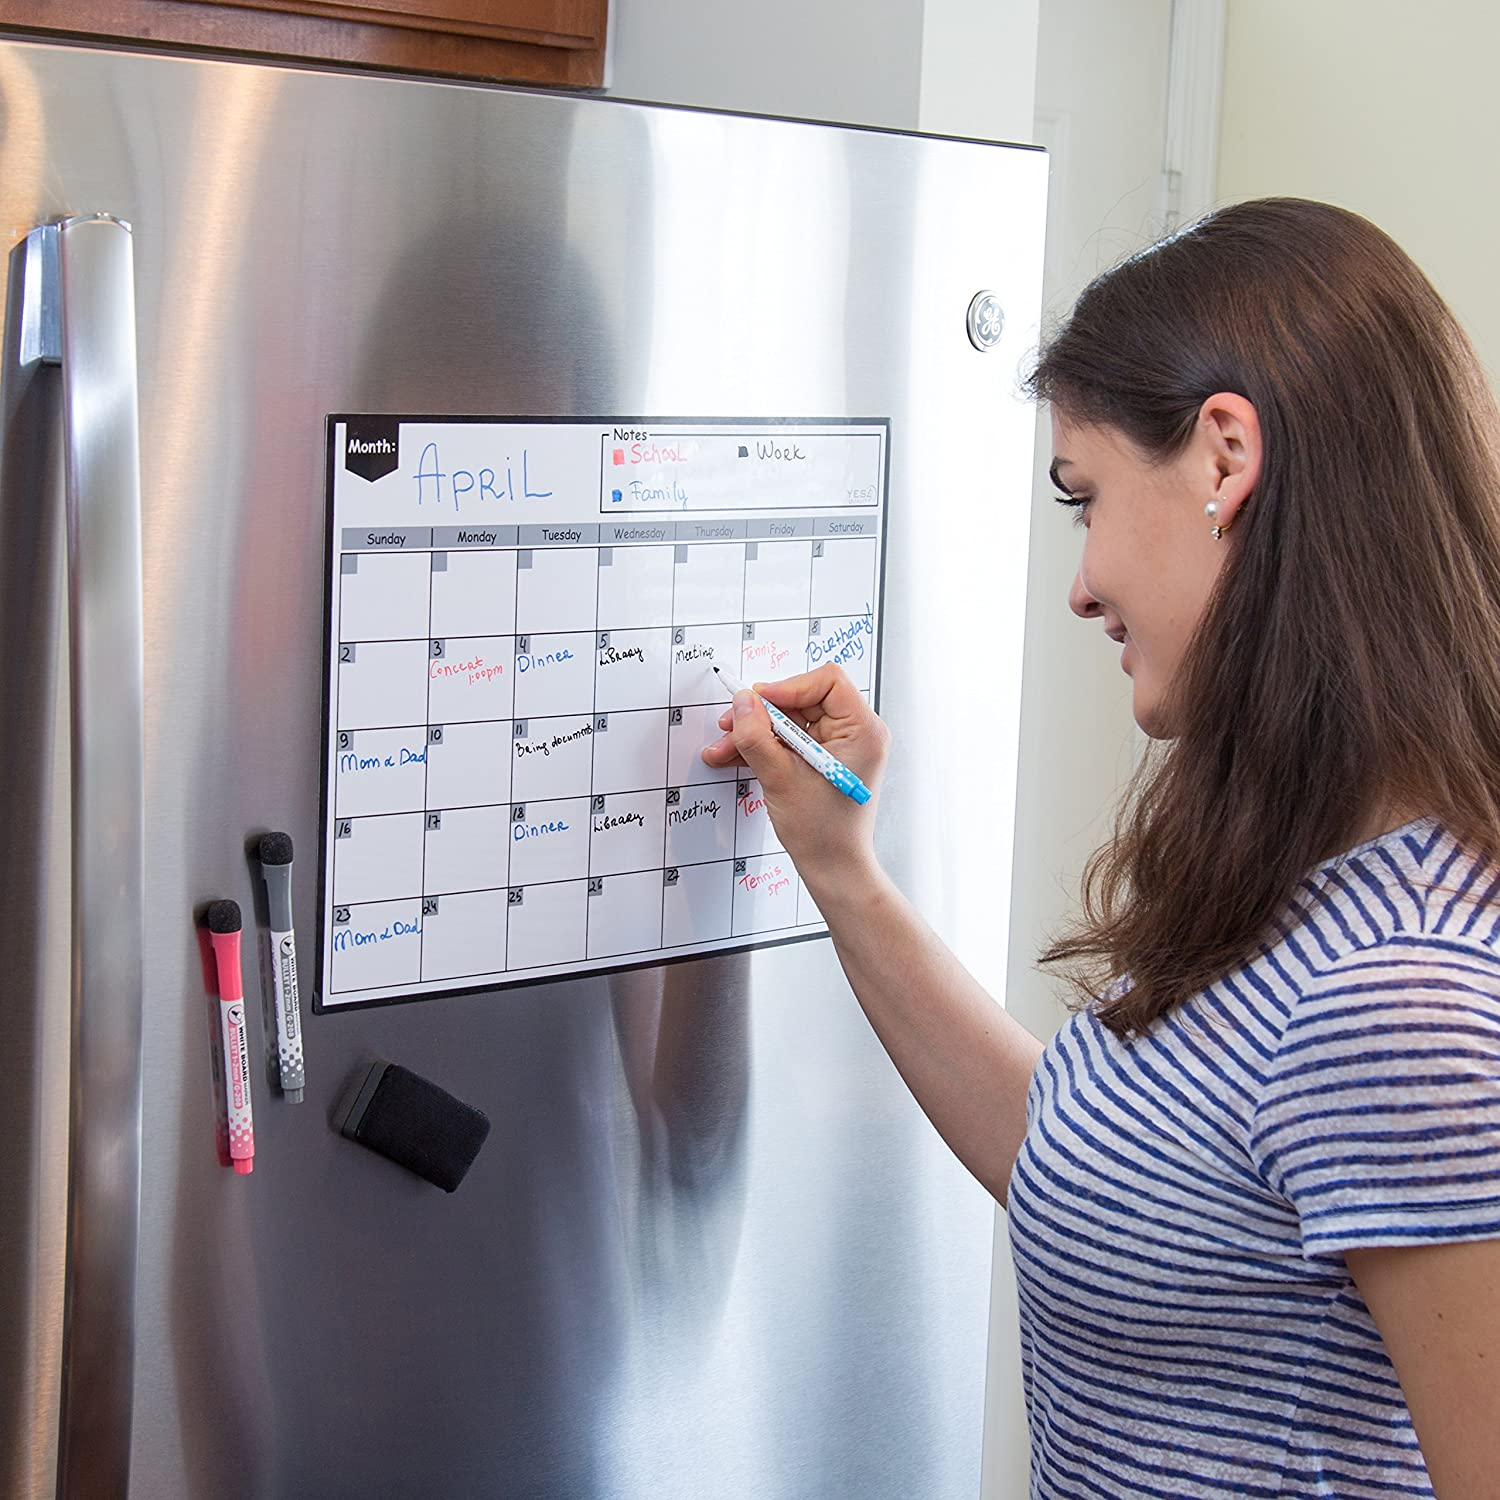 Magnetic Dry Erase Calendar for Fridge with Stain Resistant Technology - 16x12"